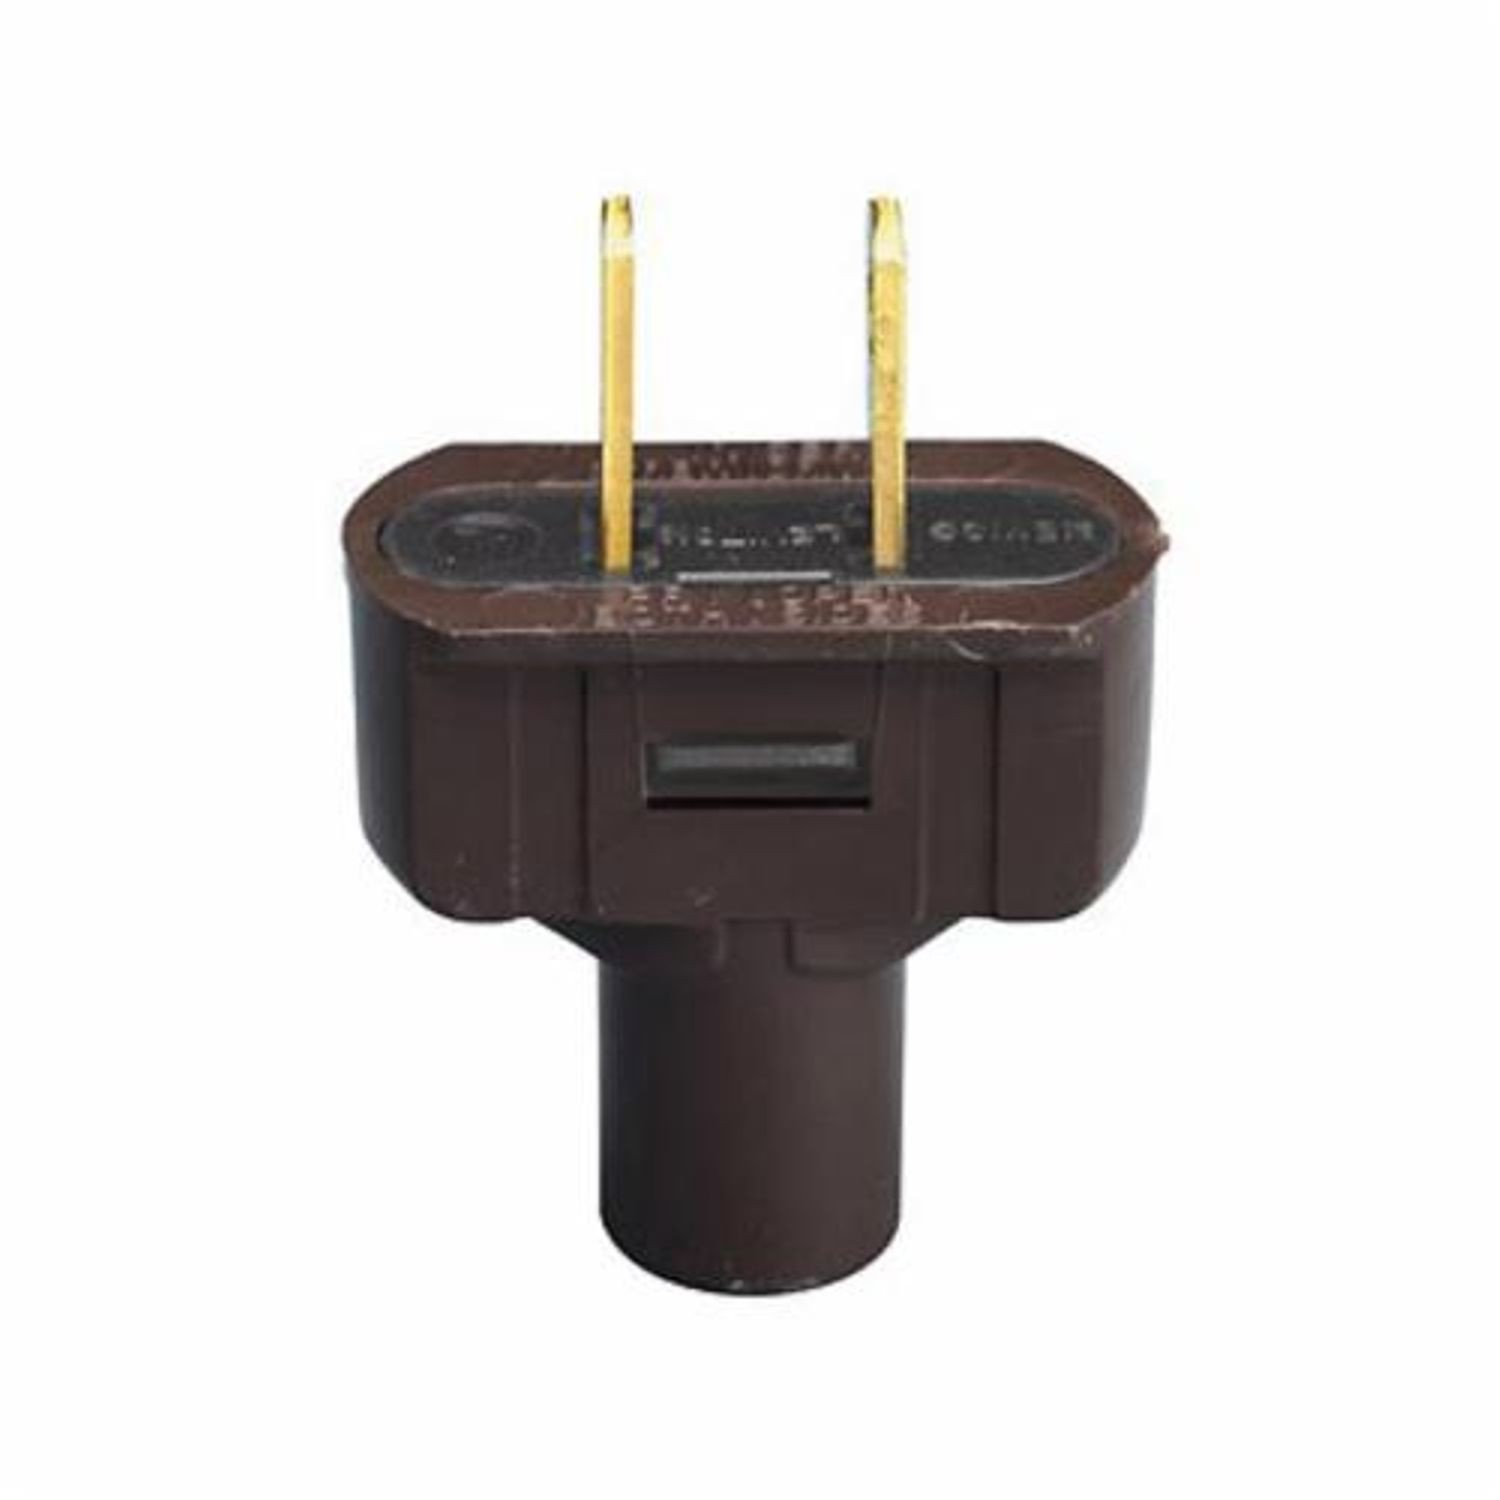 Leviton 48643 Cable Mount Non Grounding Polarized Short Flat Wiring A Plug Vinyl 125 Vac 15 2 Poles Wires Brown